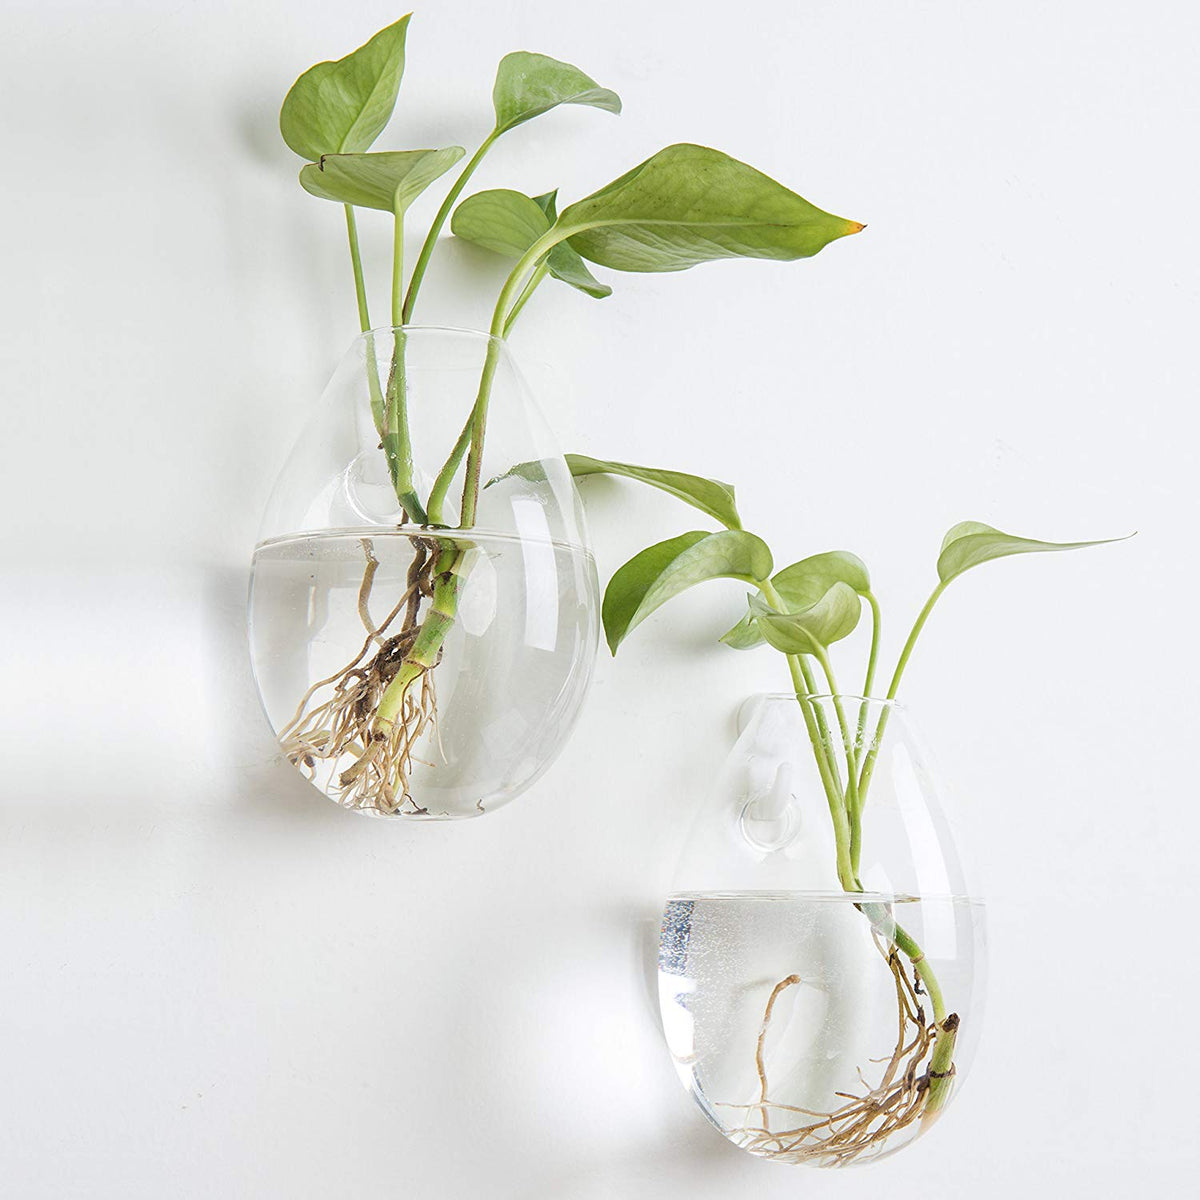 Set of 2 Wall Hanging Planters Glass Plant Terrariums